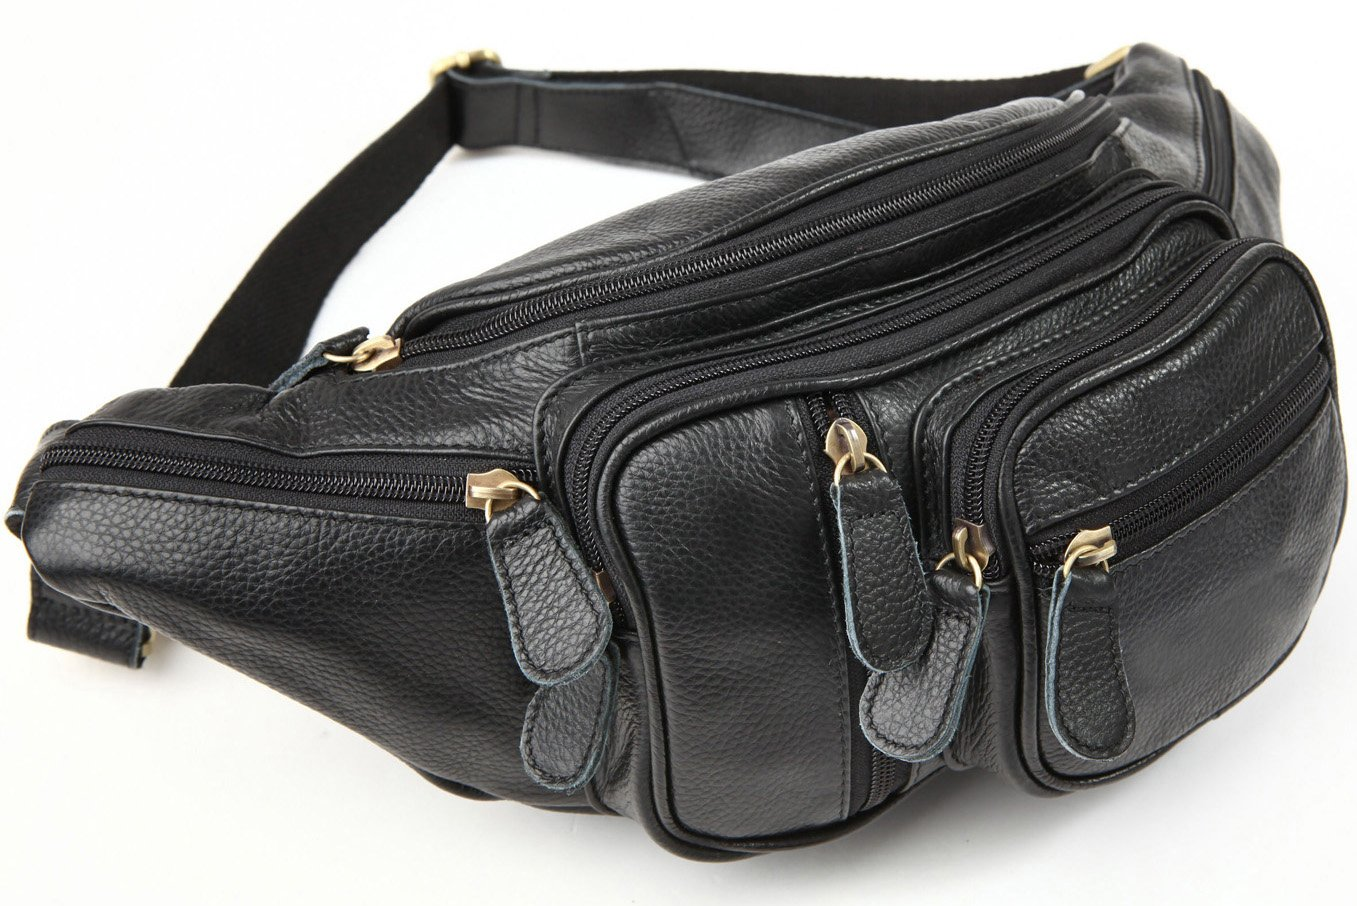 Texbo Men's Genuine Leather Fanny Waist Pack With Many Zipper Pockets Large Bag